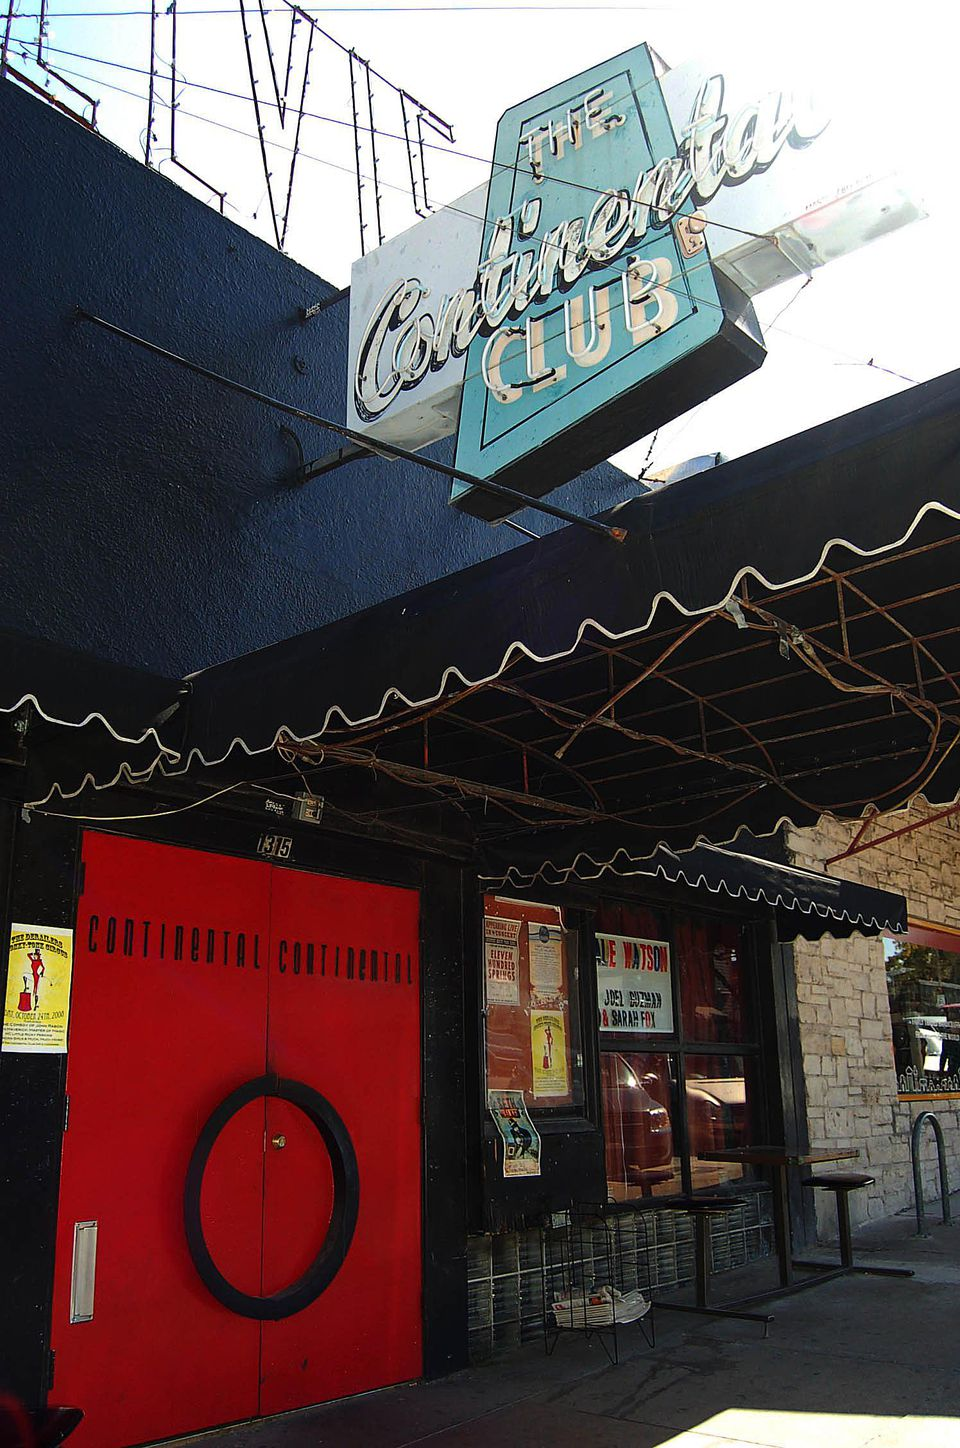 The Continental Club on South Congress Avenue